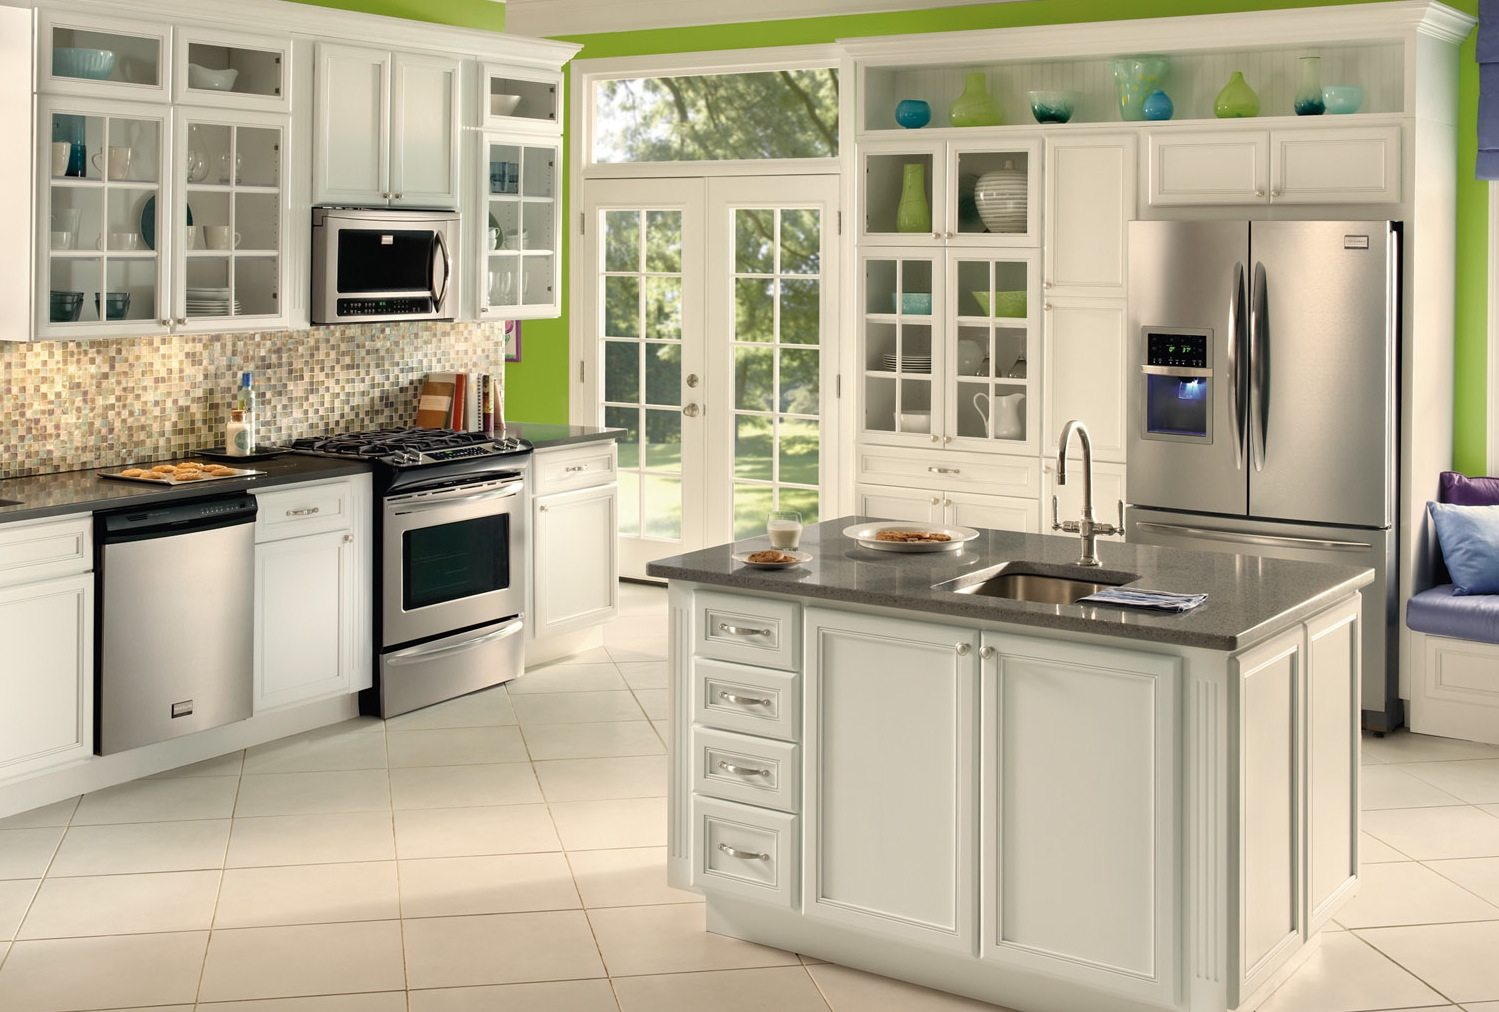 Black Kitchen Appliance Package Fresh Idea To Design Your Lowes Kitchen Appliance Packages Best